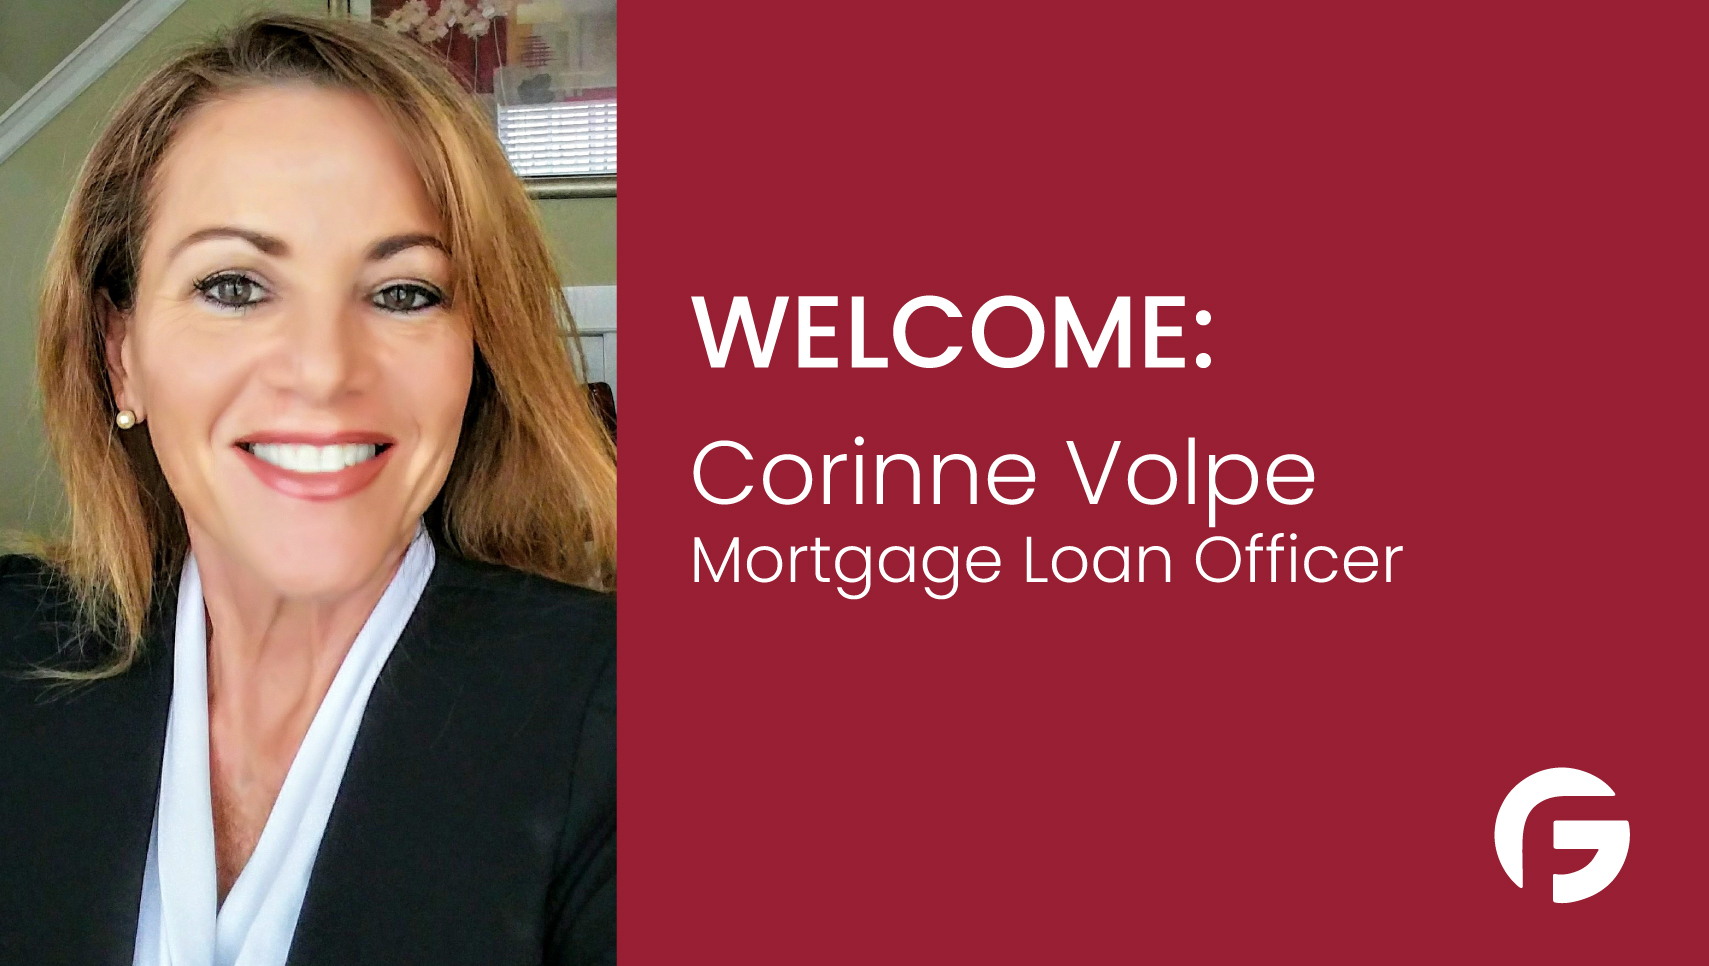 Corinne Volpe, Loan Officer, serving the state of Oregon